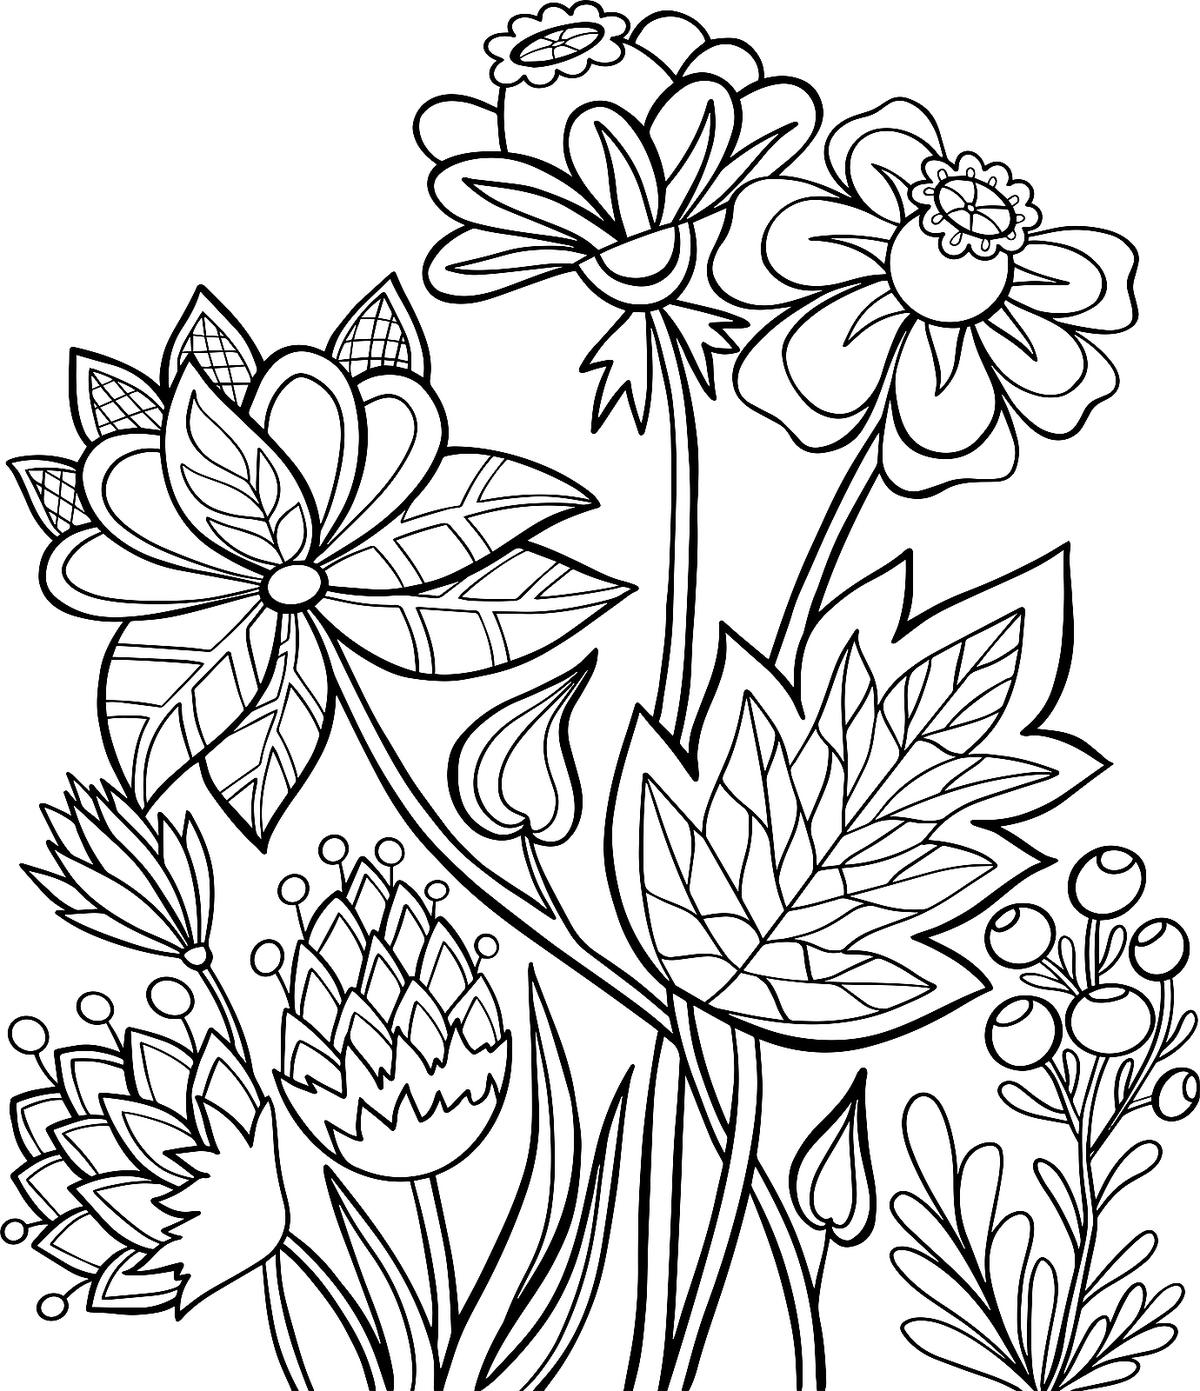 colouring page of flowers free rainforest coloring pages colouring page of flowers